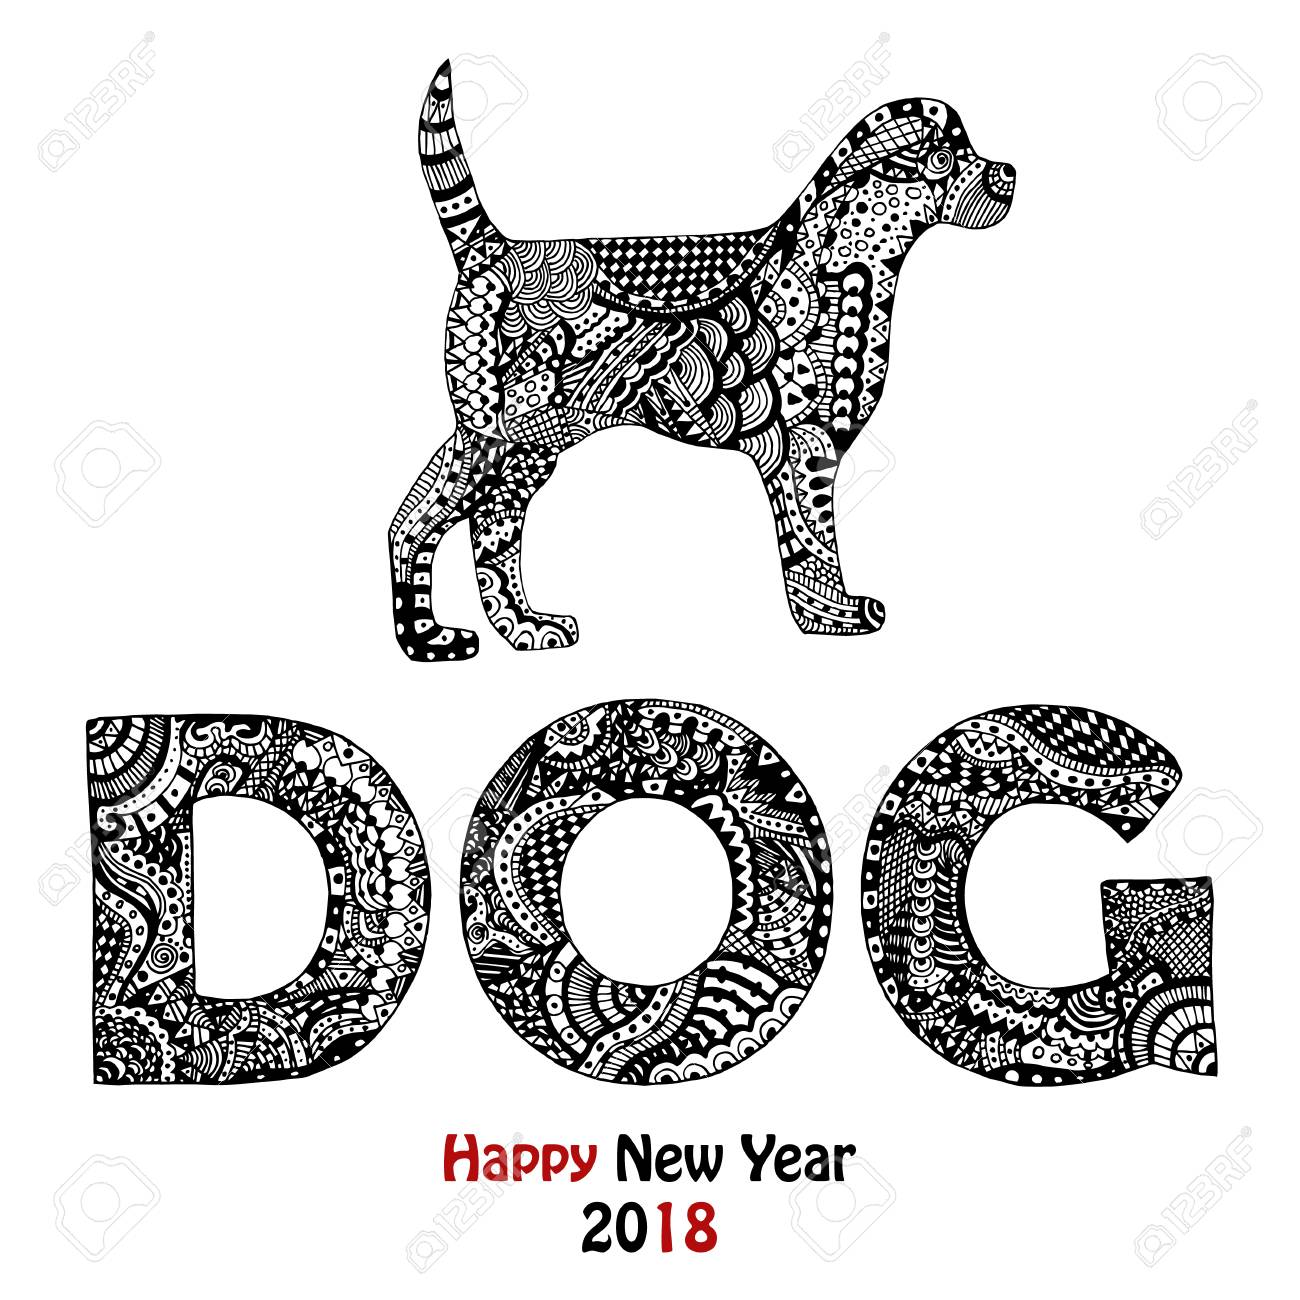 New Year 2018 card with zentangle inspired handdrawn dog and...